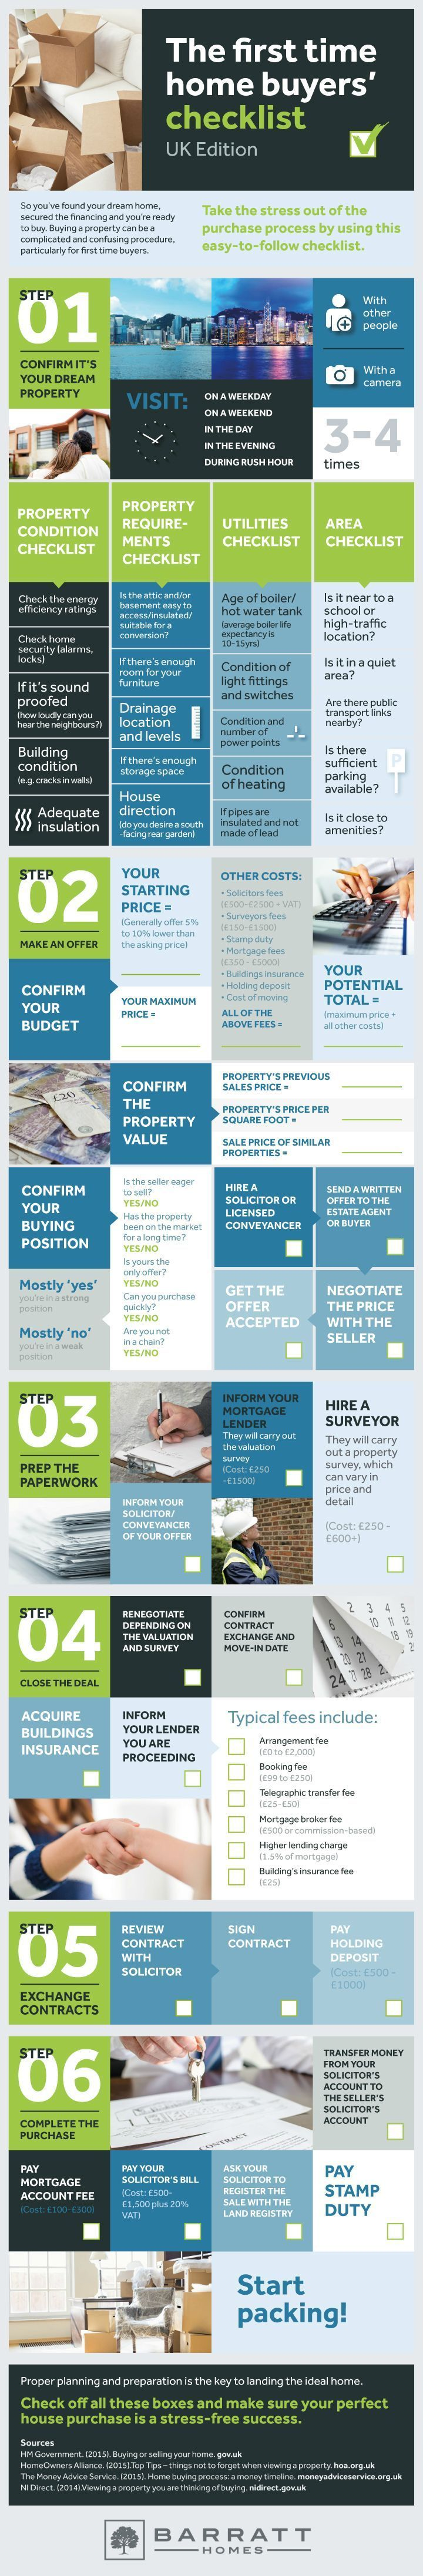 The First Time Home Buyer's Checklist #infographic #HomeImprovement #RealEstate